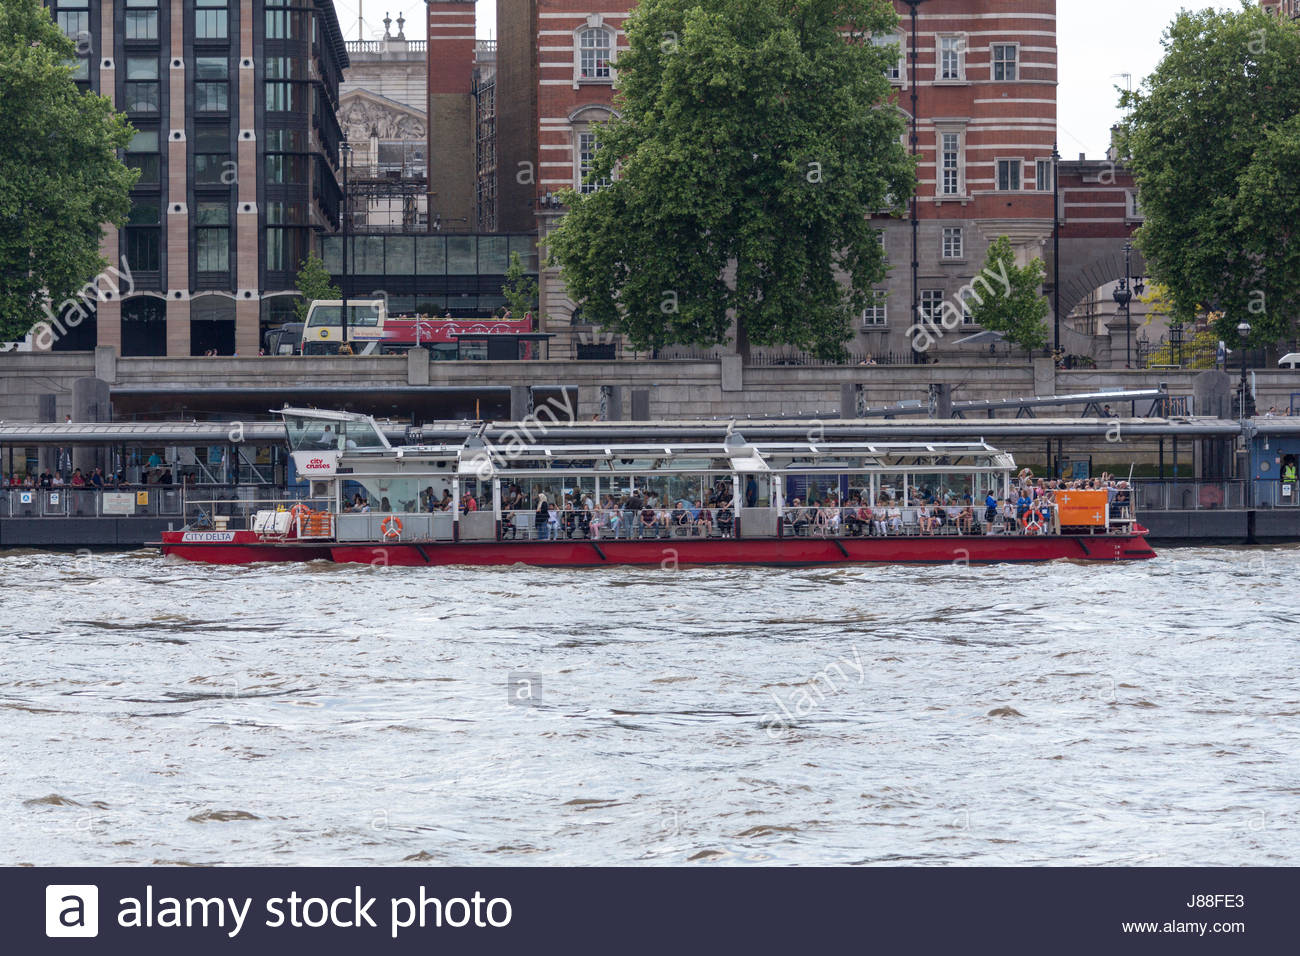 Passenger vessel City Delta of City Cruises docked at Westminster Pier - Stock Image